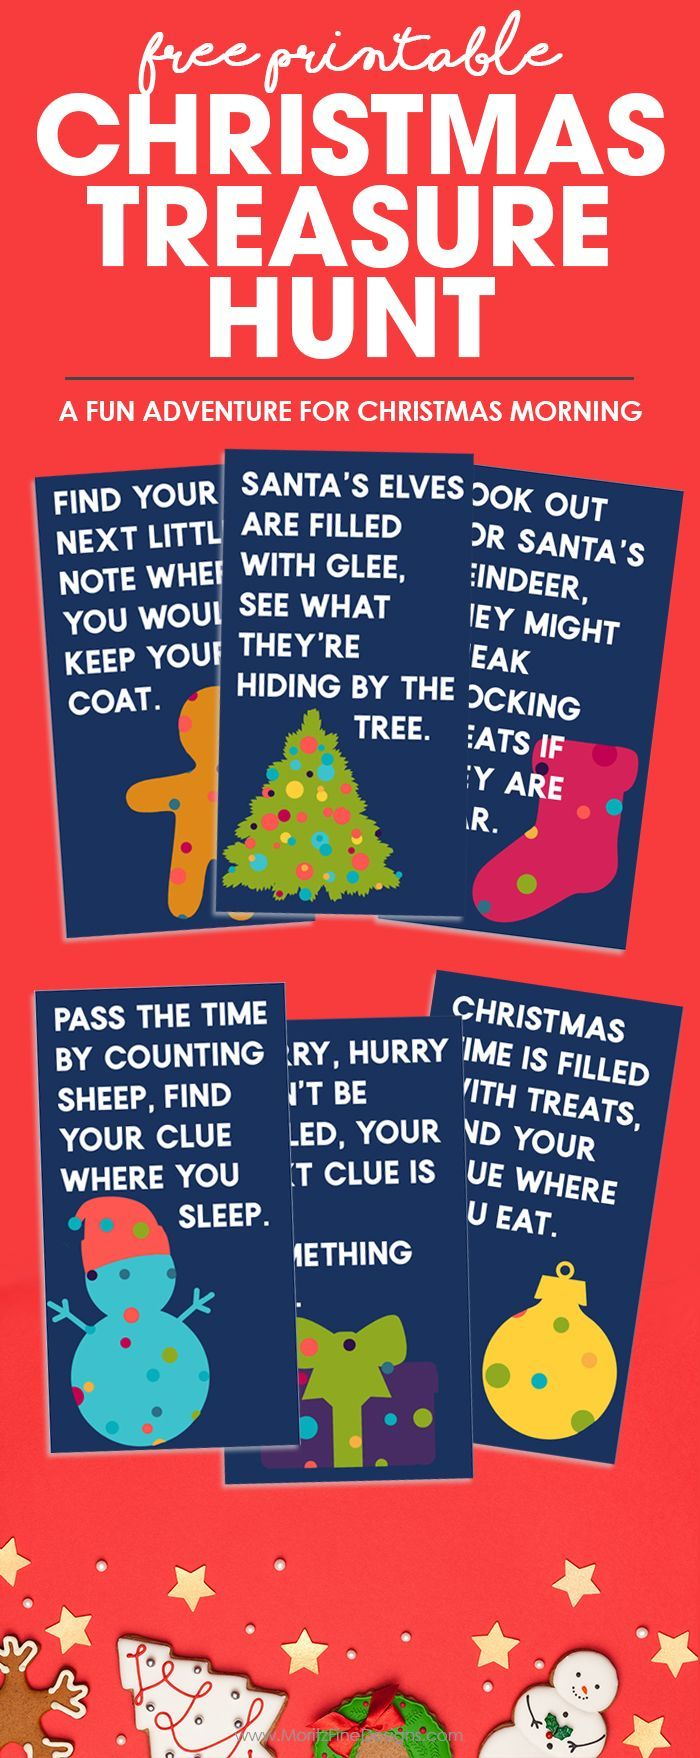 Make Christmas morning even more special by having a Christmas Treasure Hunt. It's the perfect activity for your kids to find that one special gift. You can even do the scavenger hunt during your Christmas Party! #freeprintable #christmastreasurehunt #christmasscavengerhunt #christmasgamesforkids #christmasideas